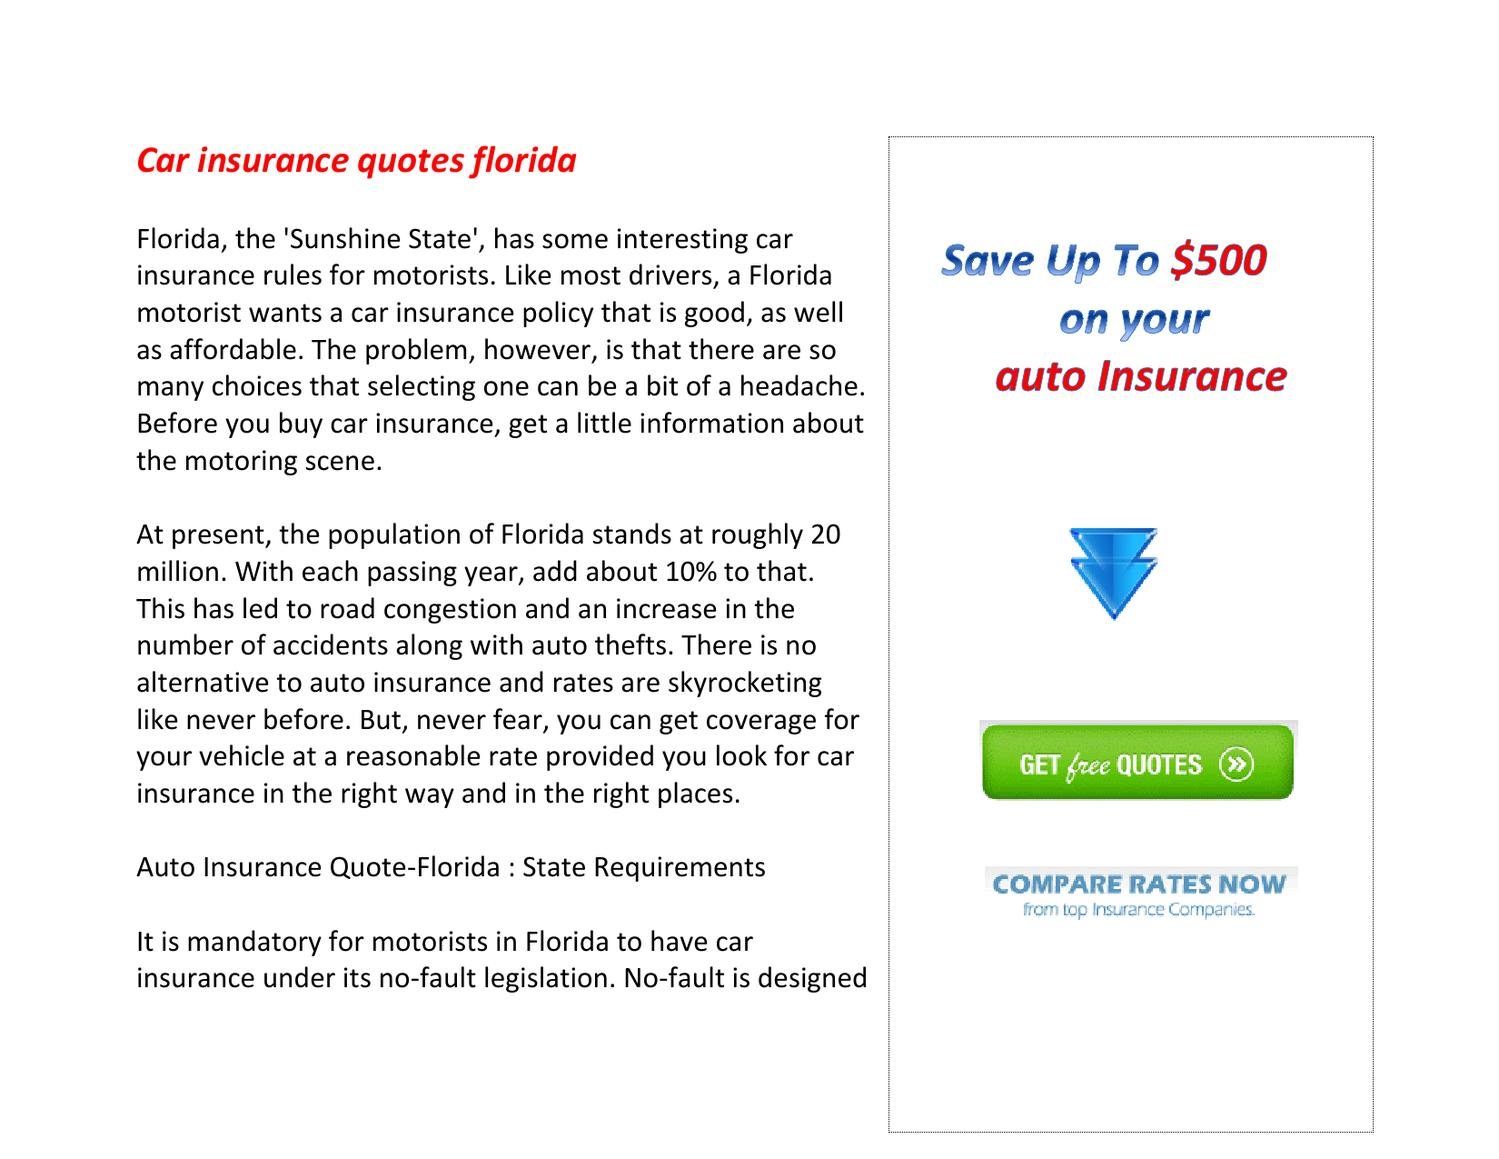 Car Insurance Quotes Florida By Heather Cobb Issuu